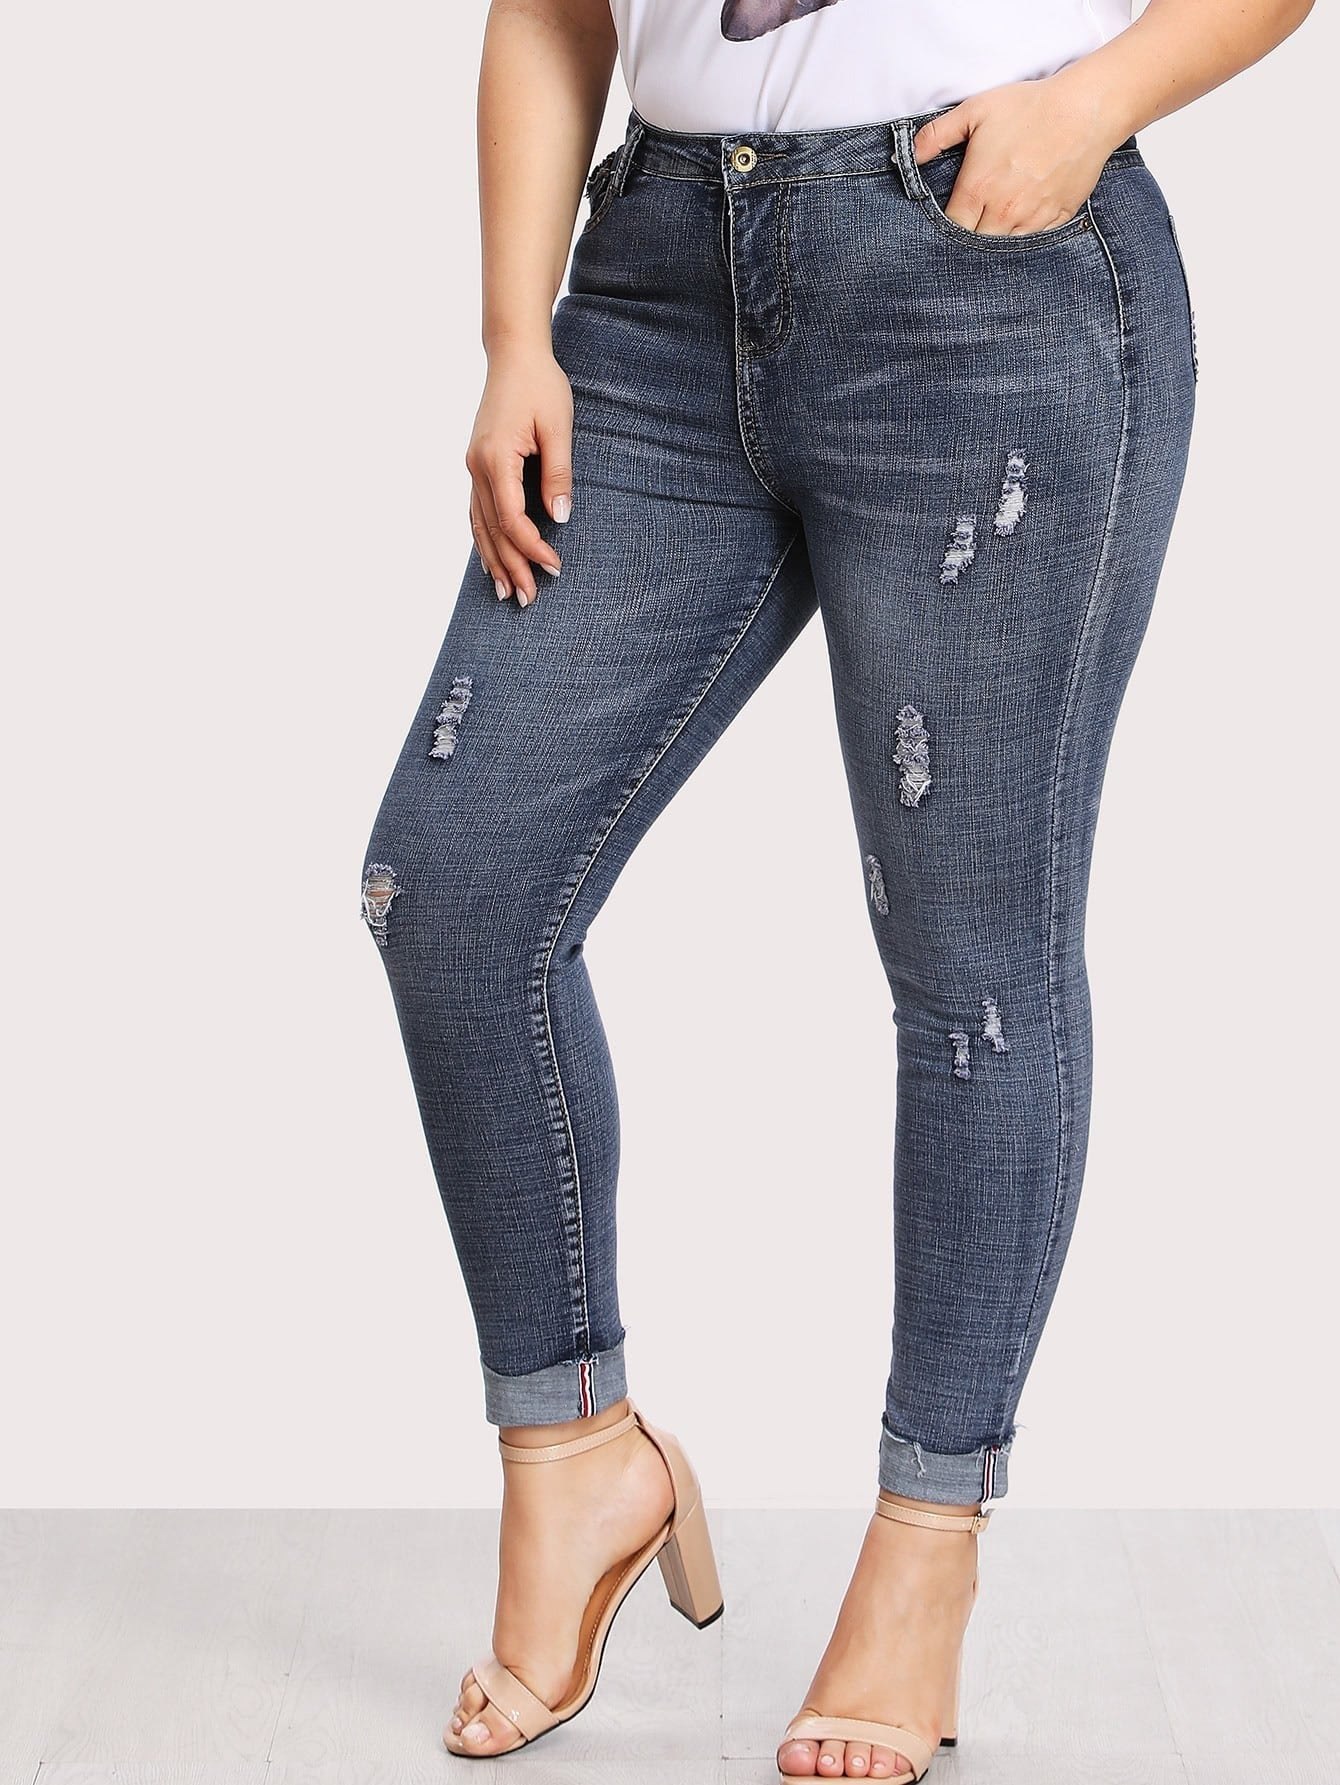 Image of Dual Pocket Back Ripped Jeans